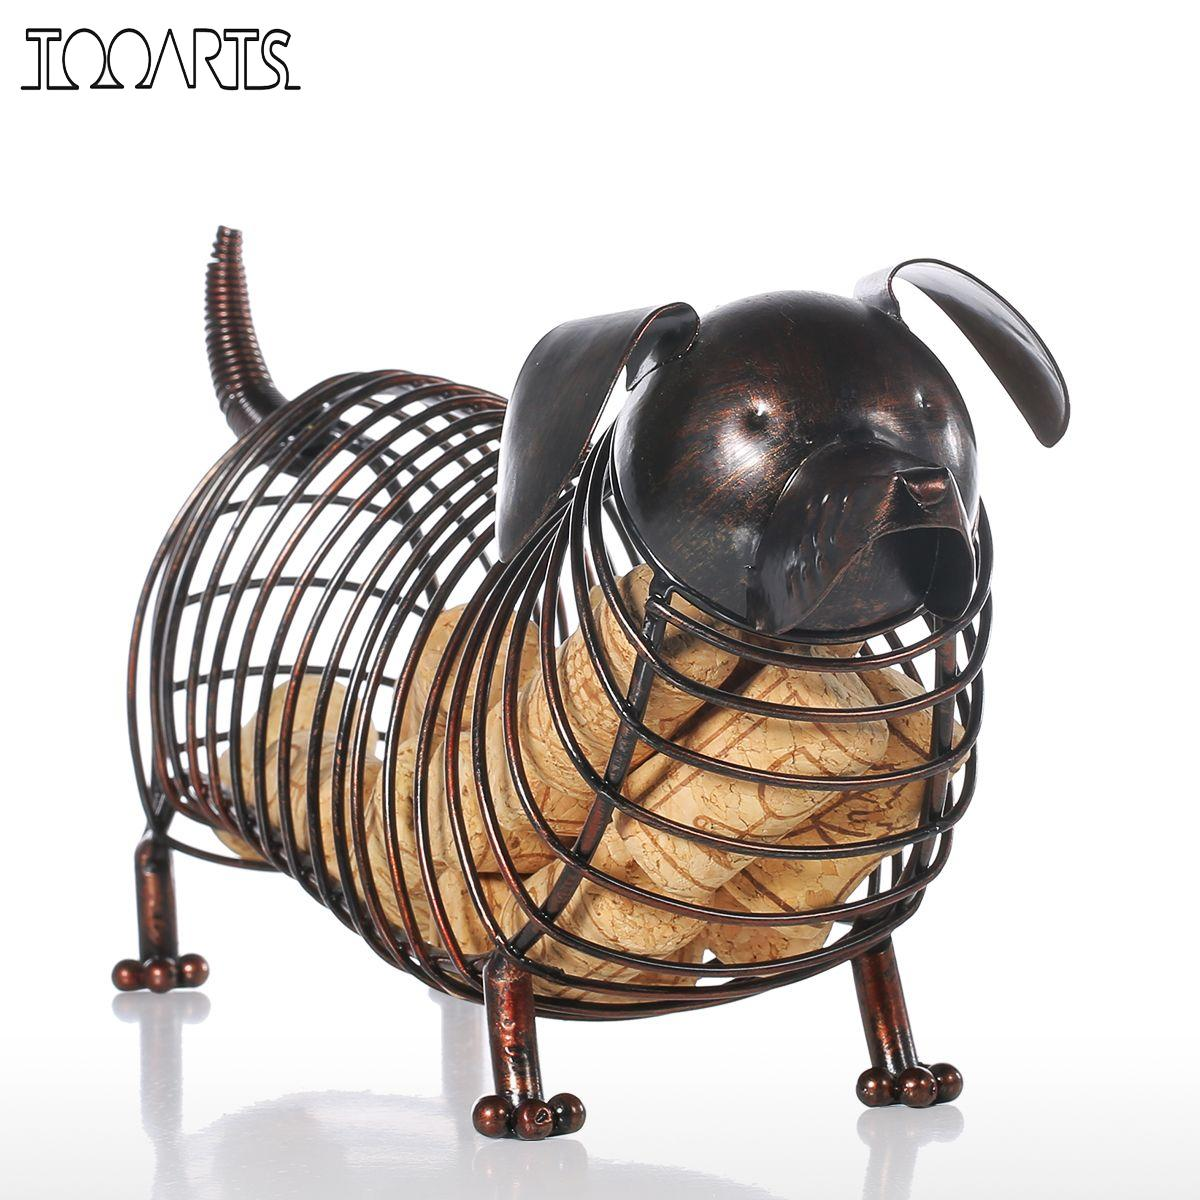 Tooarts Metal Animal Figurines Dachshund Wine Cork Container Kaasaegne tehis Iron Craft Home Decoration Aksessuaarid Gift